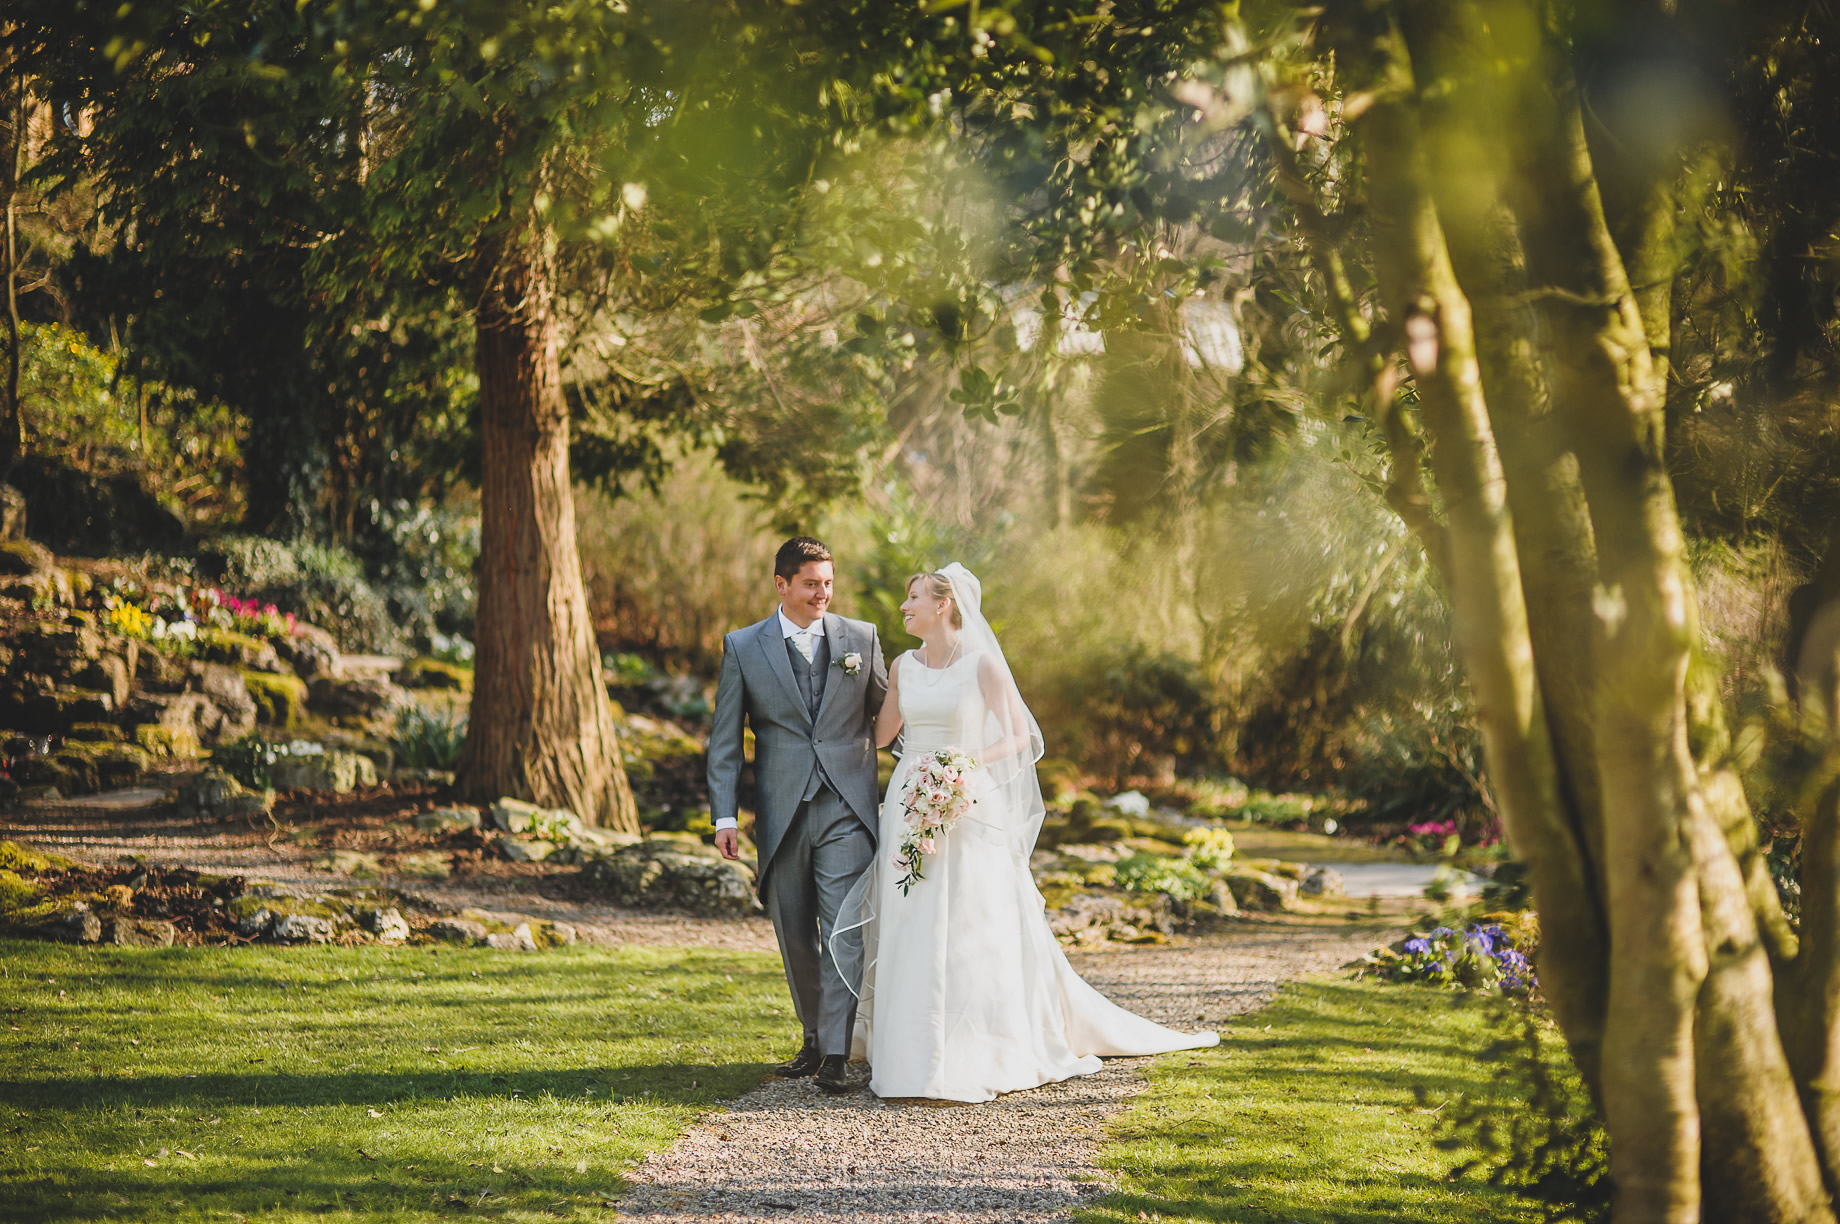 Charlotte and Will's Wedding at Mitton Hall - A Preview 031